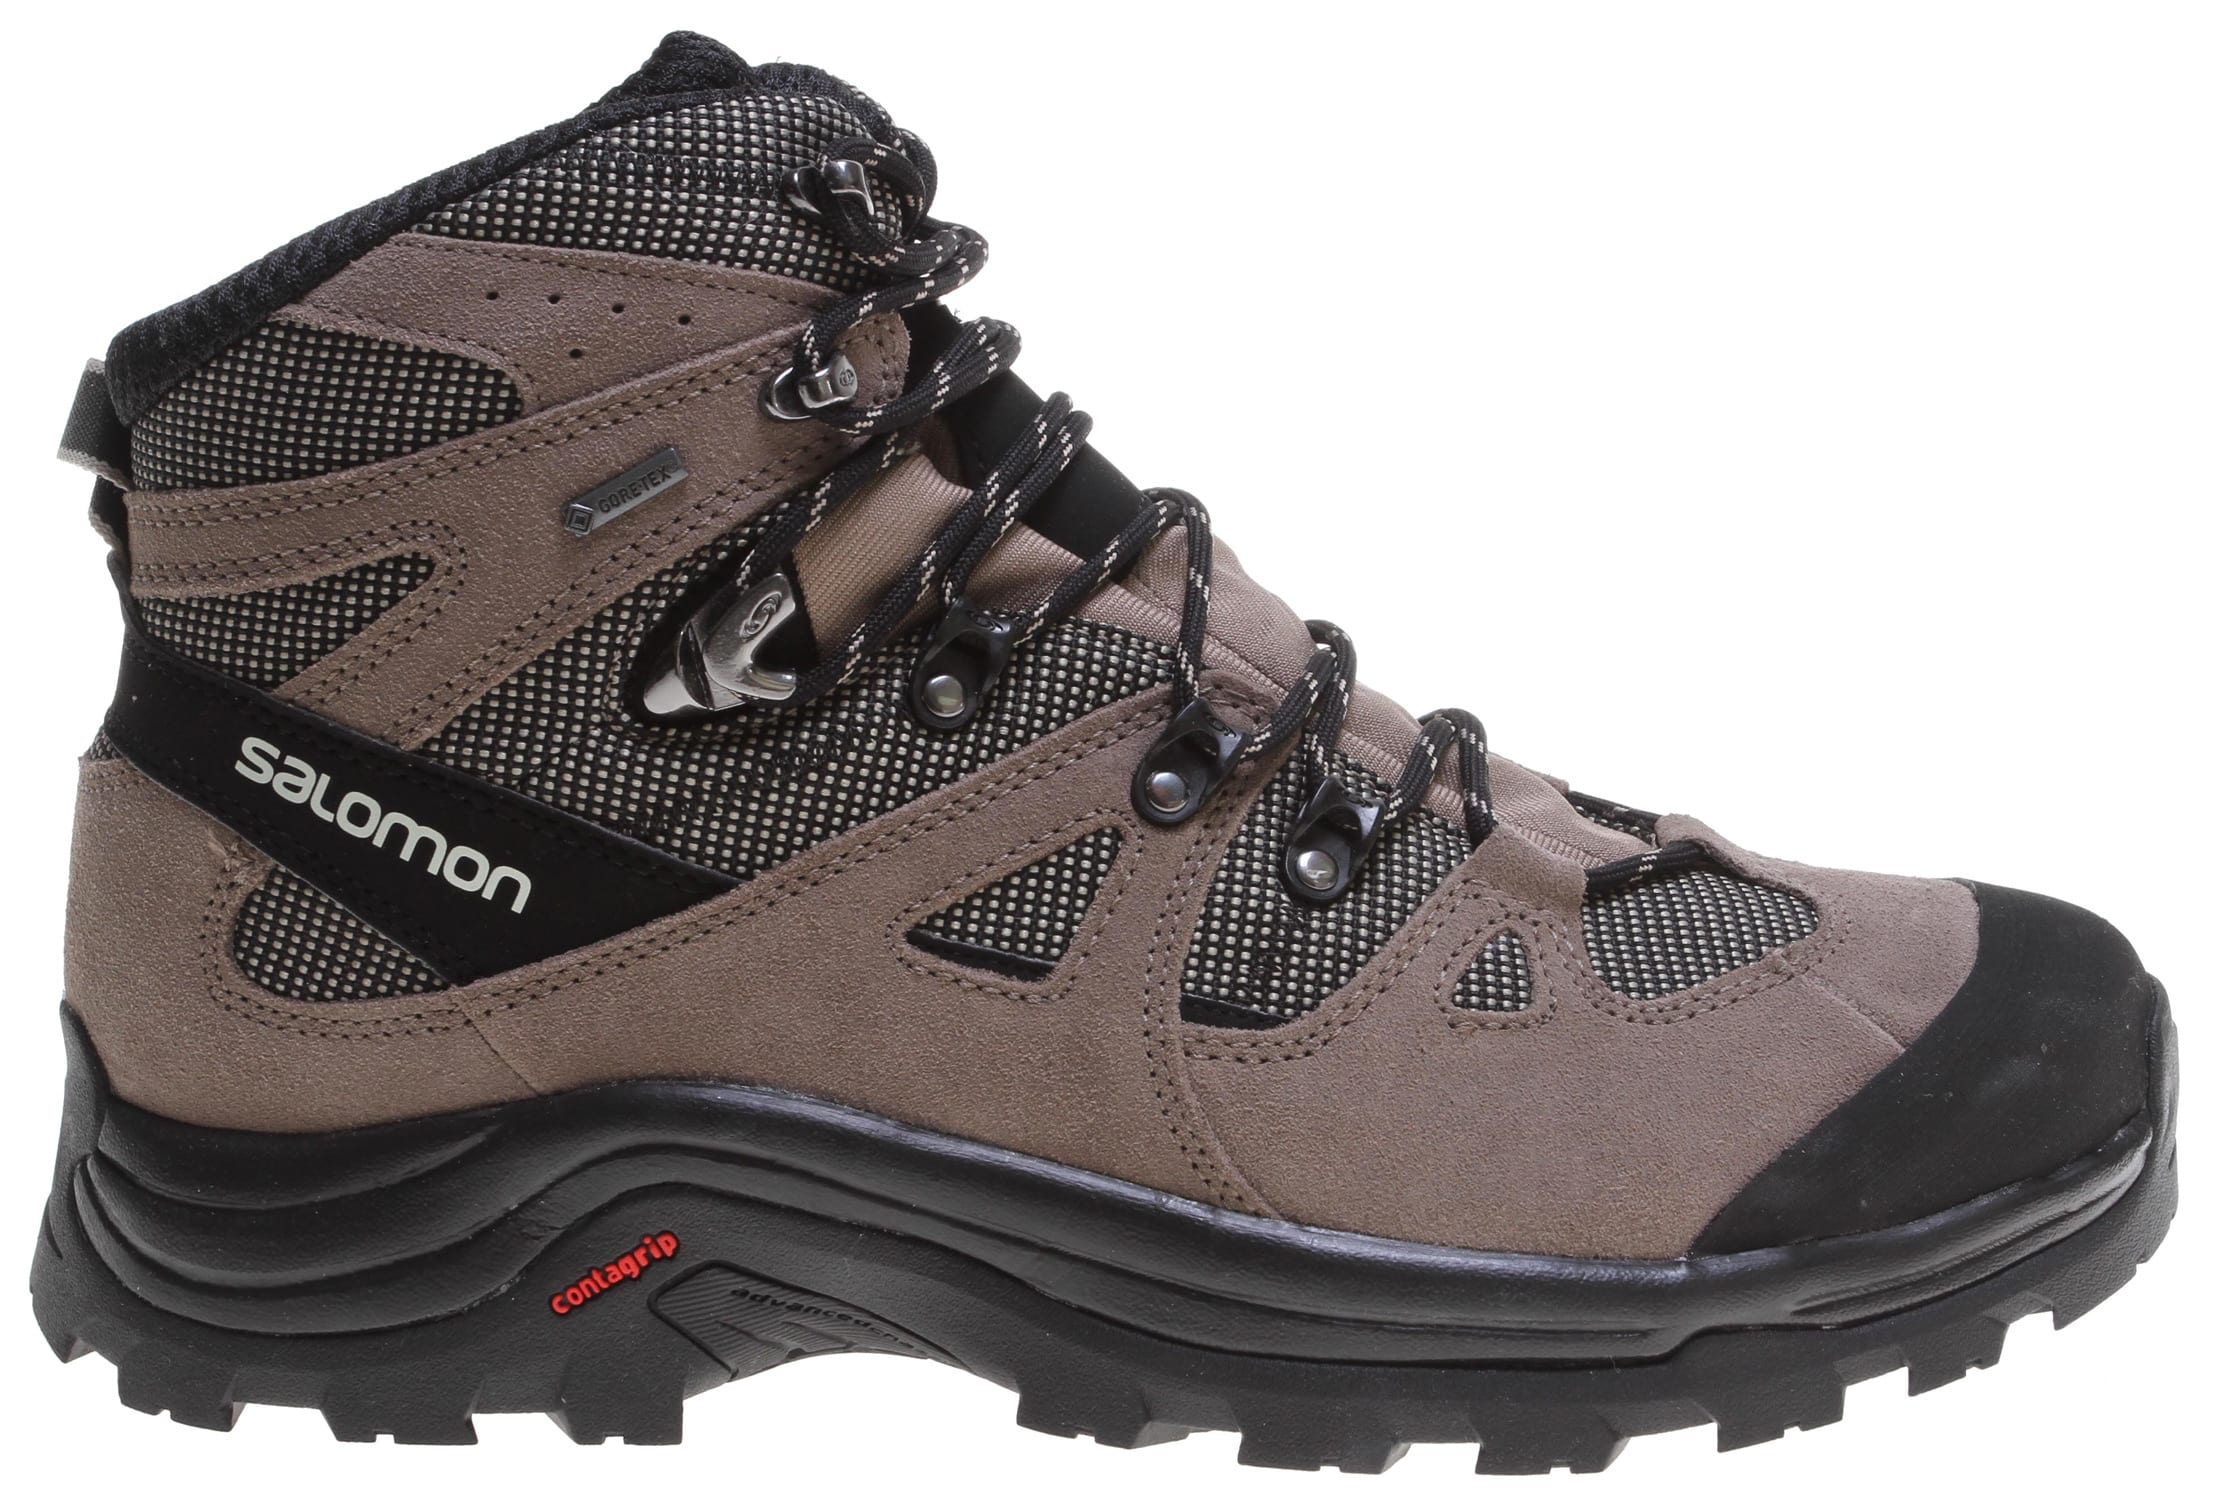 Salomon Discovery Gtx Hiking Boots